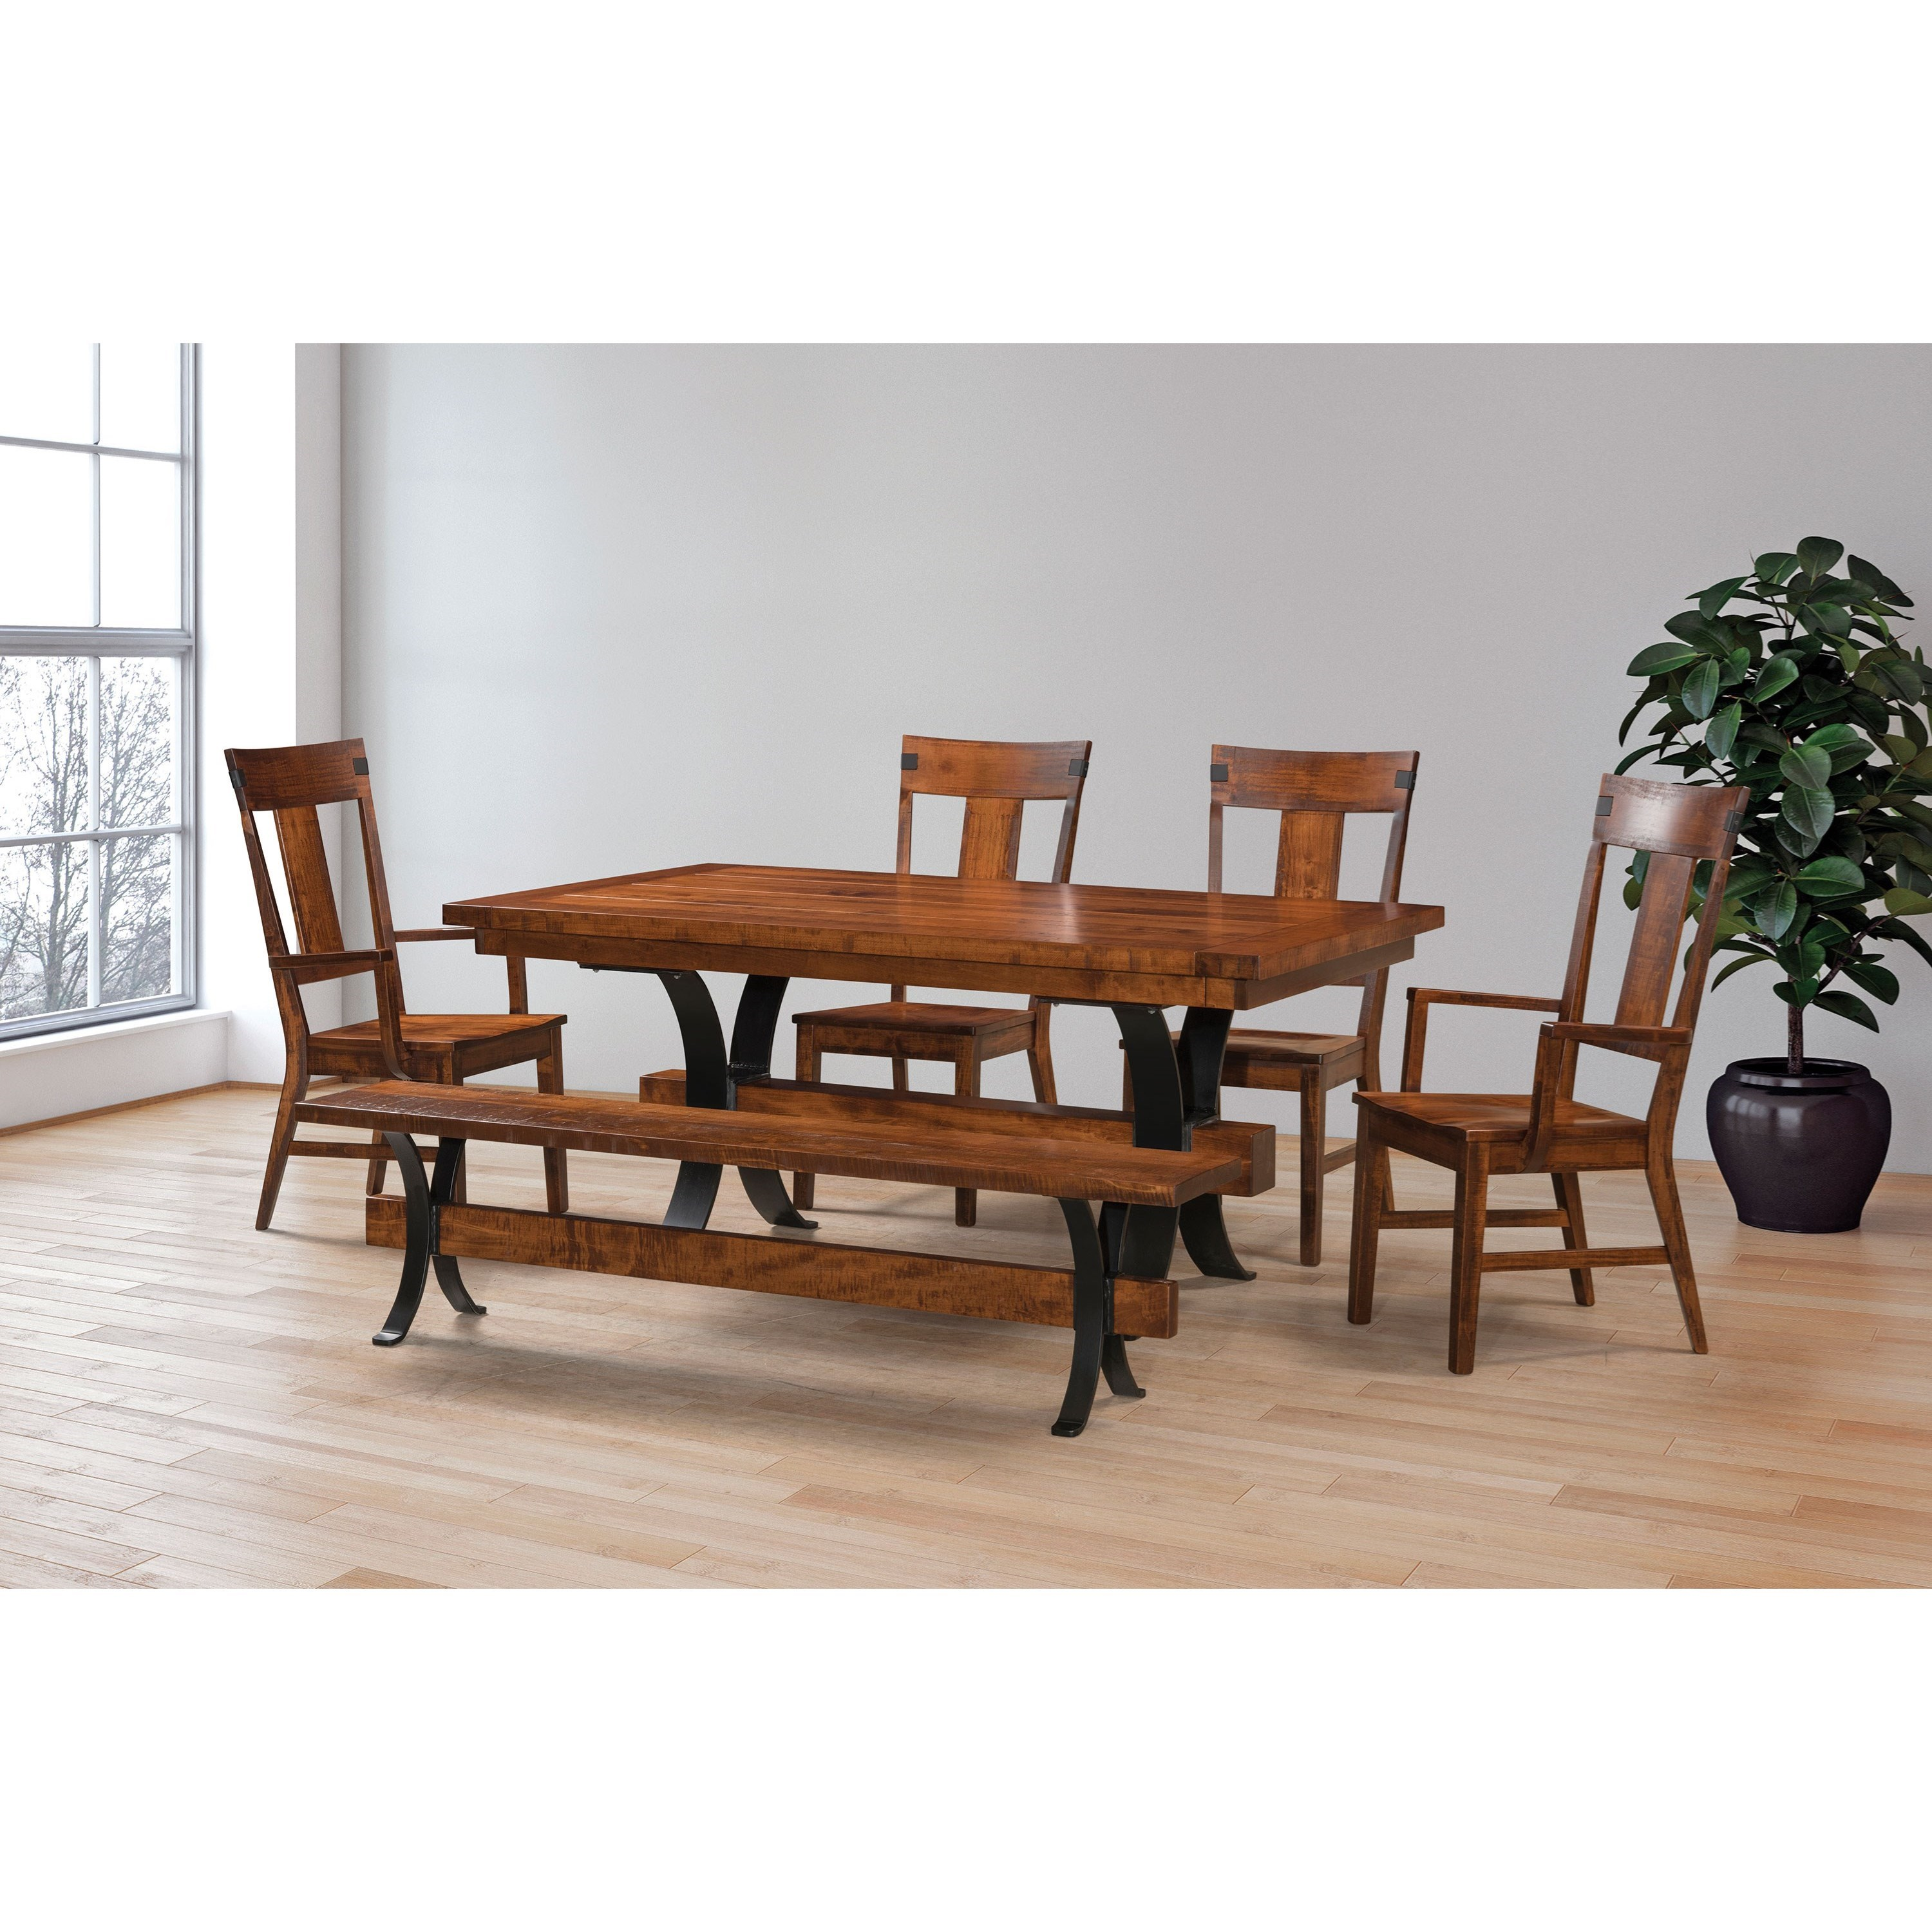 Jericho Customizable Table & Chair Set w/ Bench by Weaver Woodcraft at Saugerties Furniture Mart